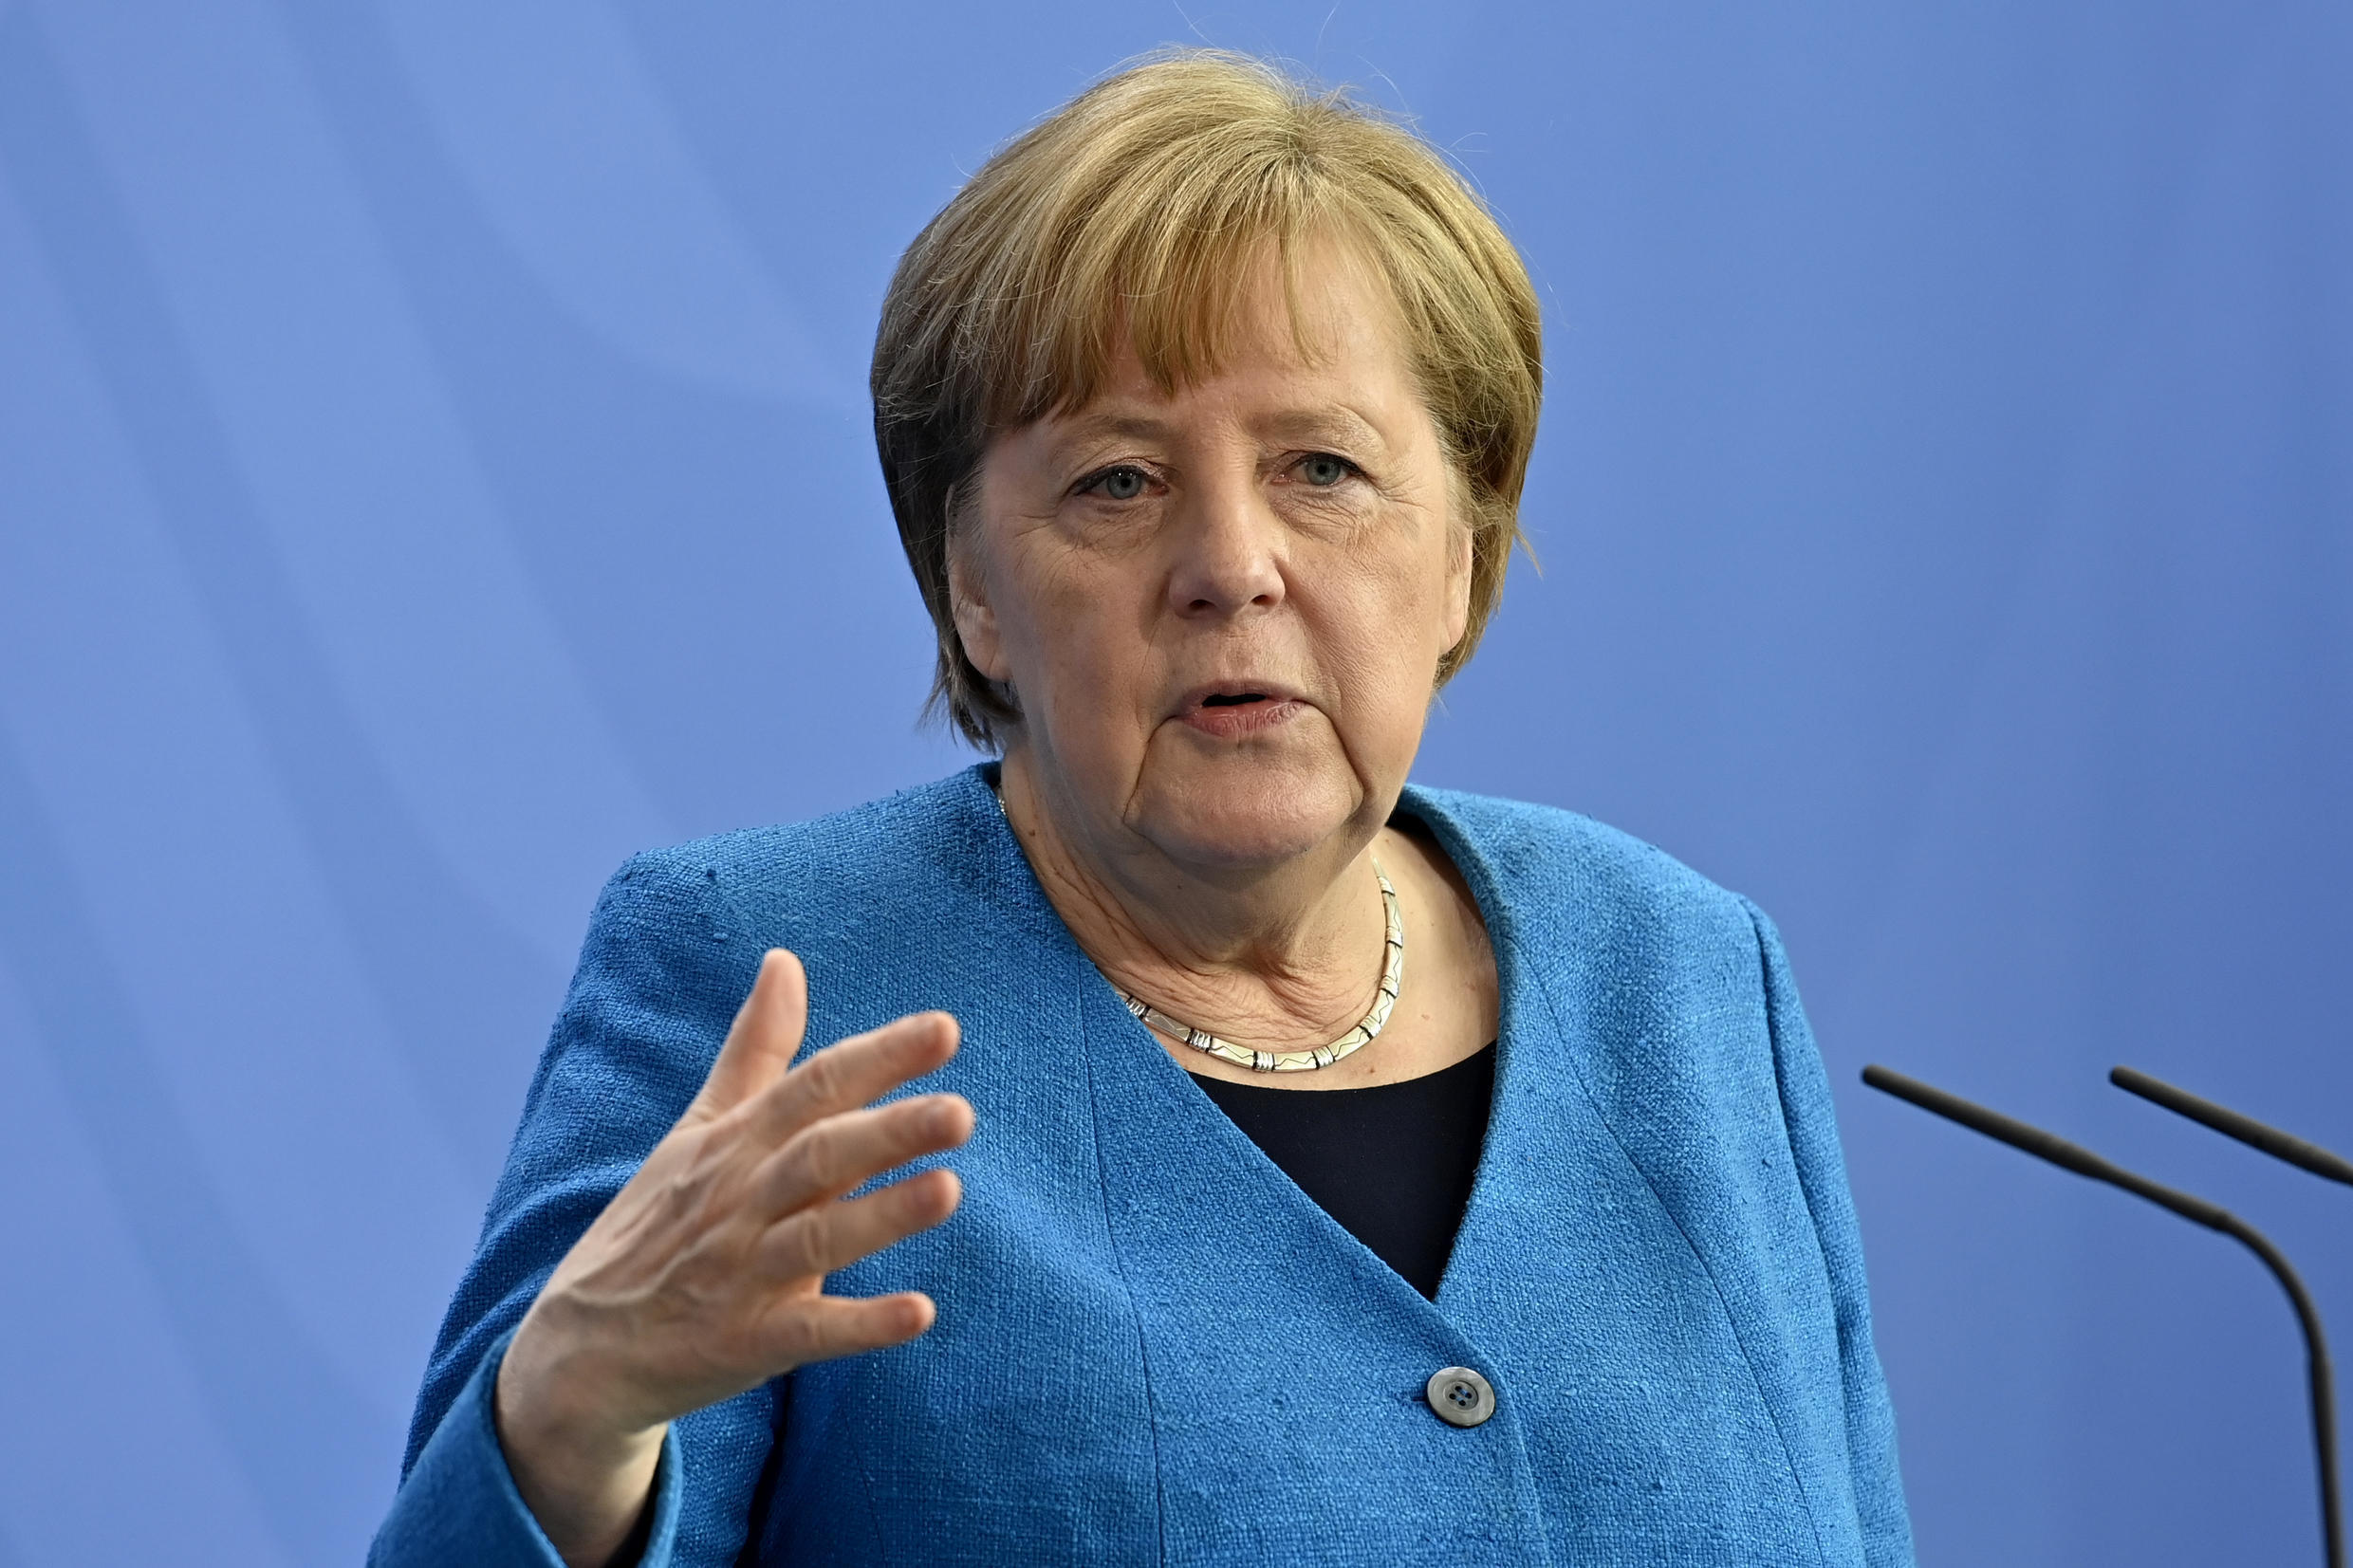 Chancellor Angela Merkel has been at Germany's helm for 16 years